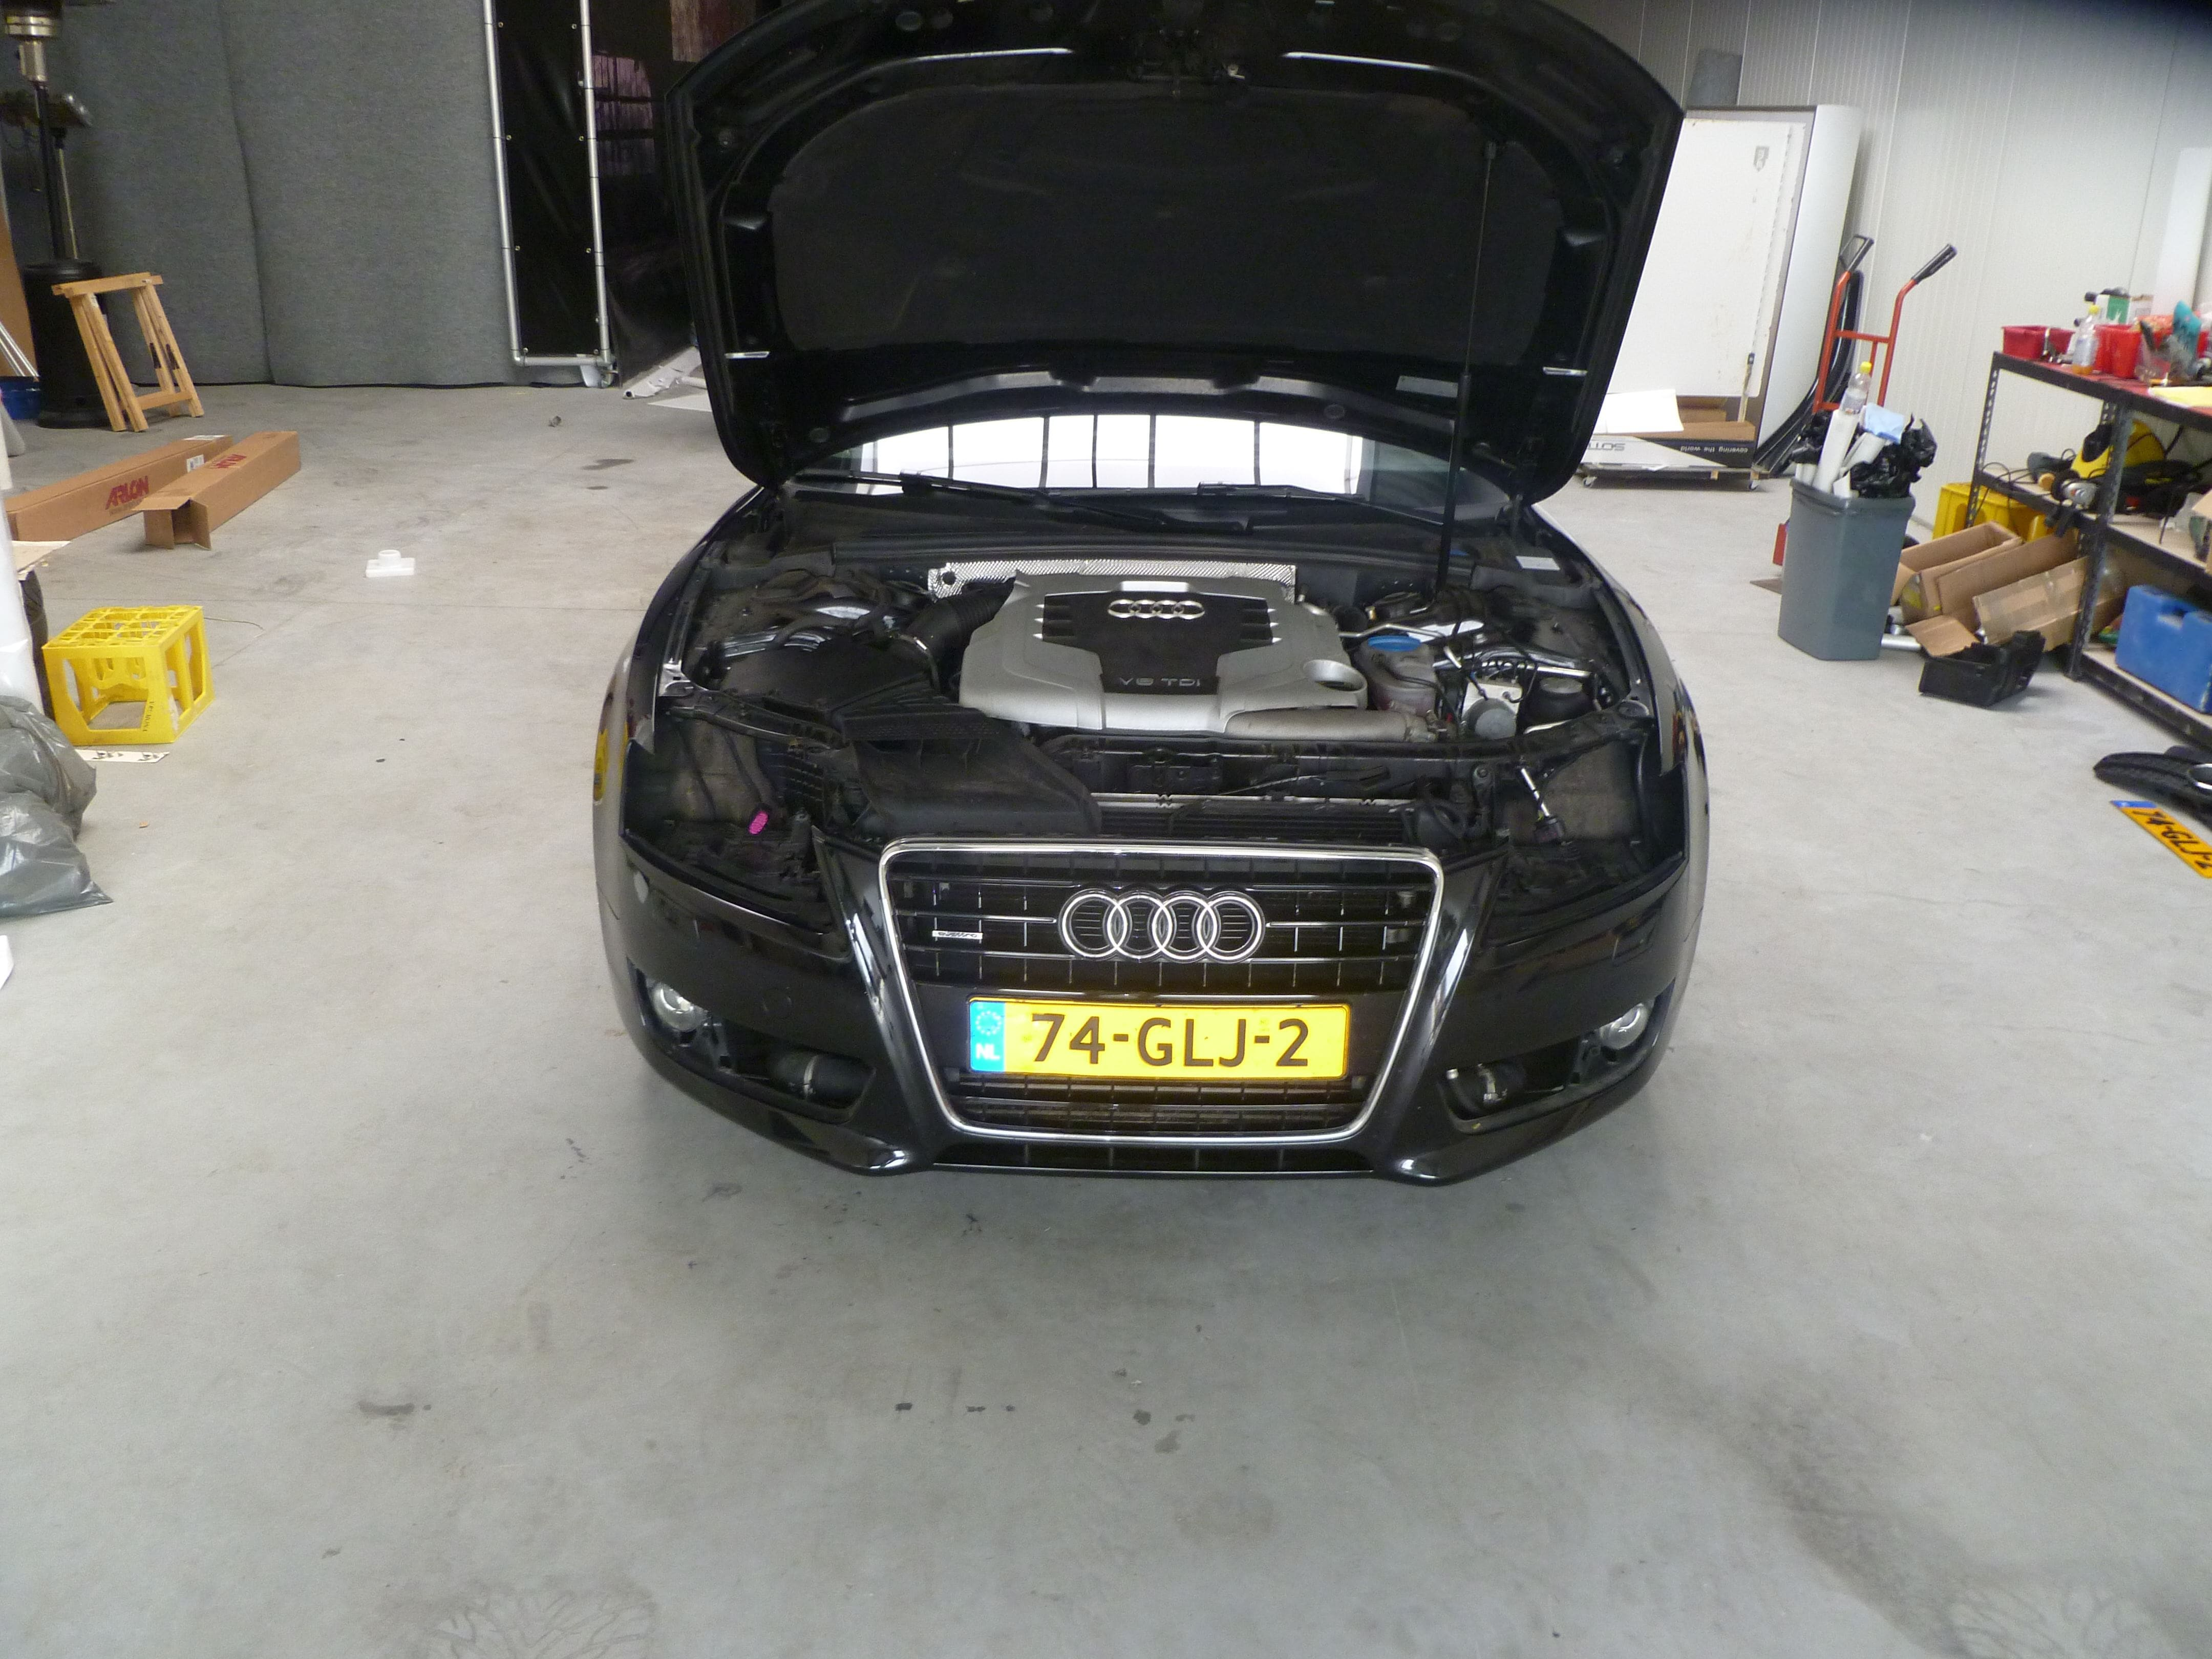 Audi A5 coupe met Metallic Witte Wrap, Carwrapping door Wrapmyride.nu Foto-nr:4678, ©2020